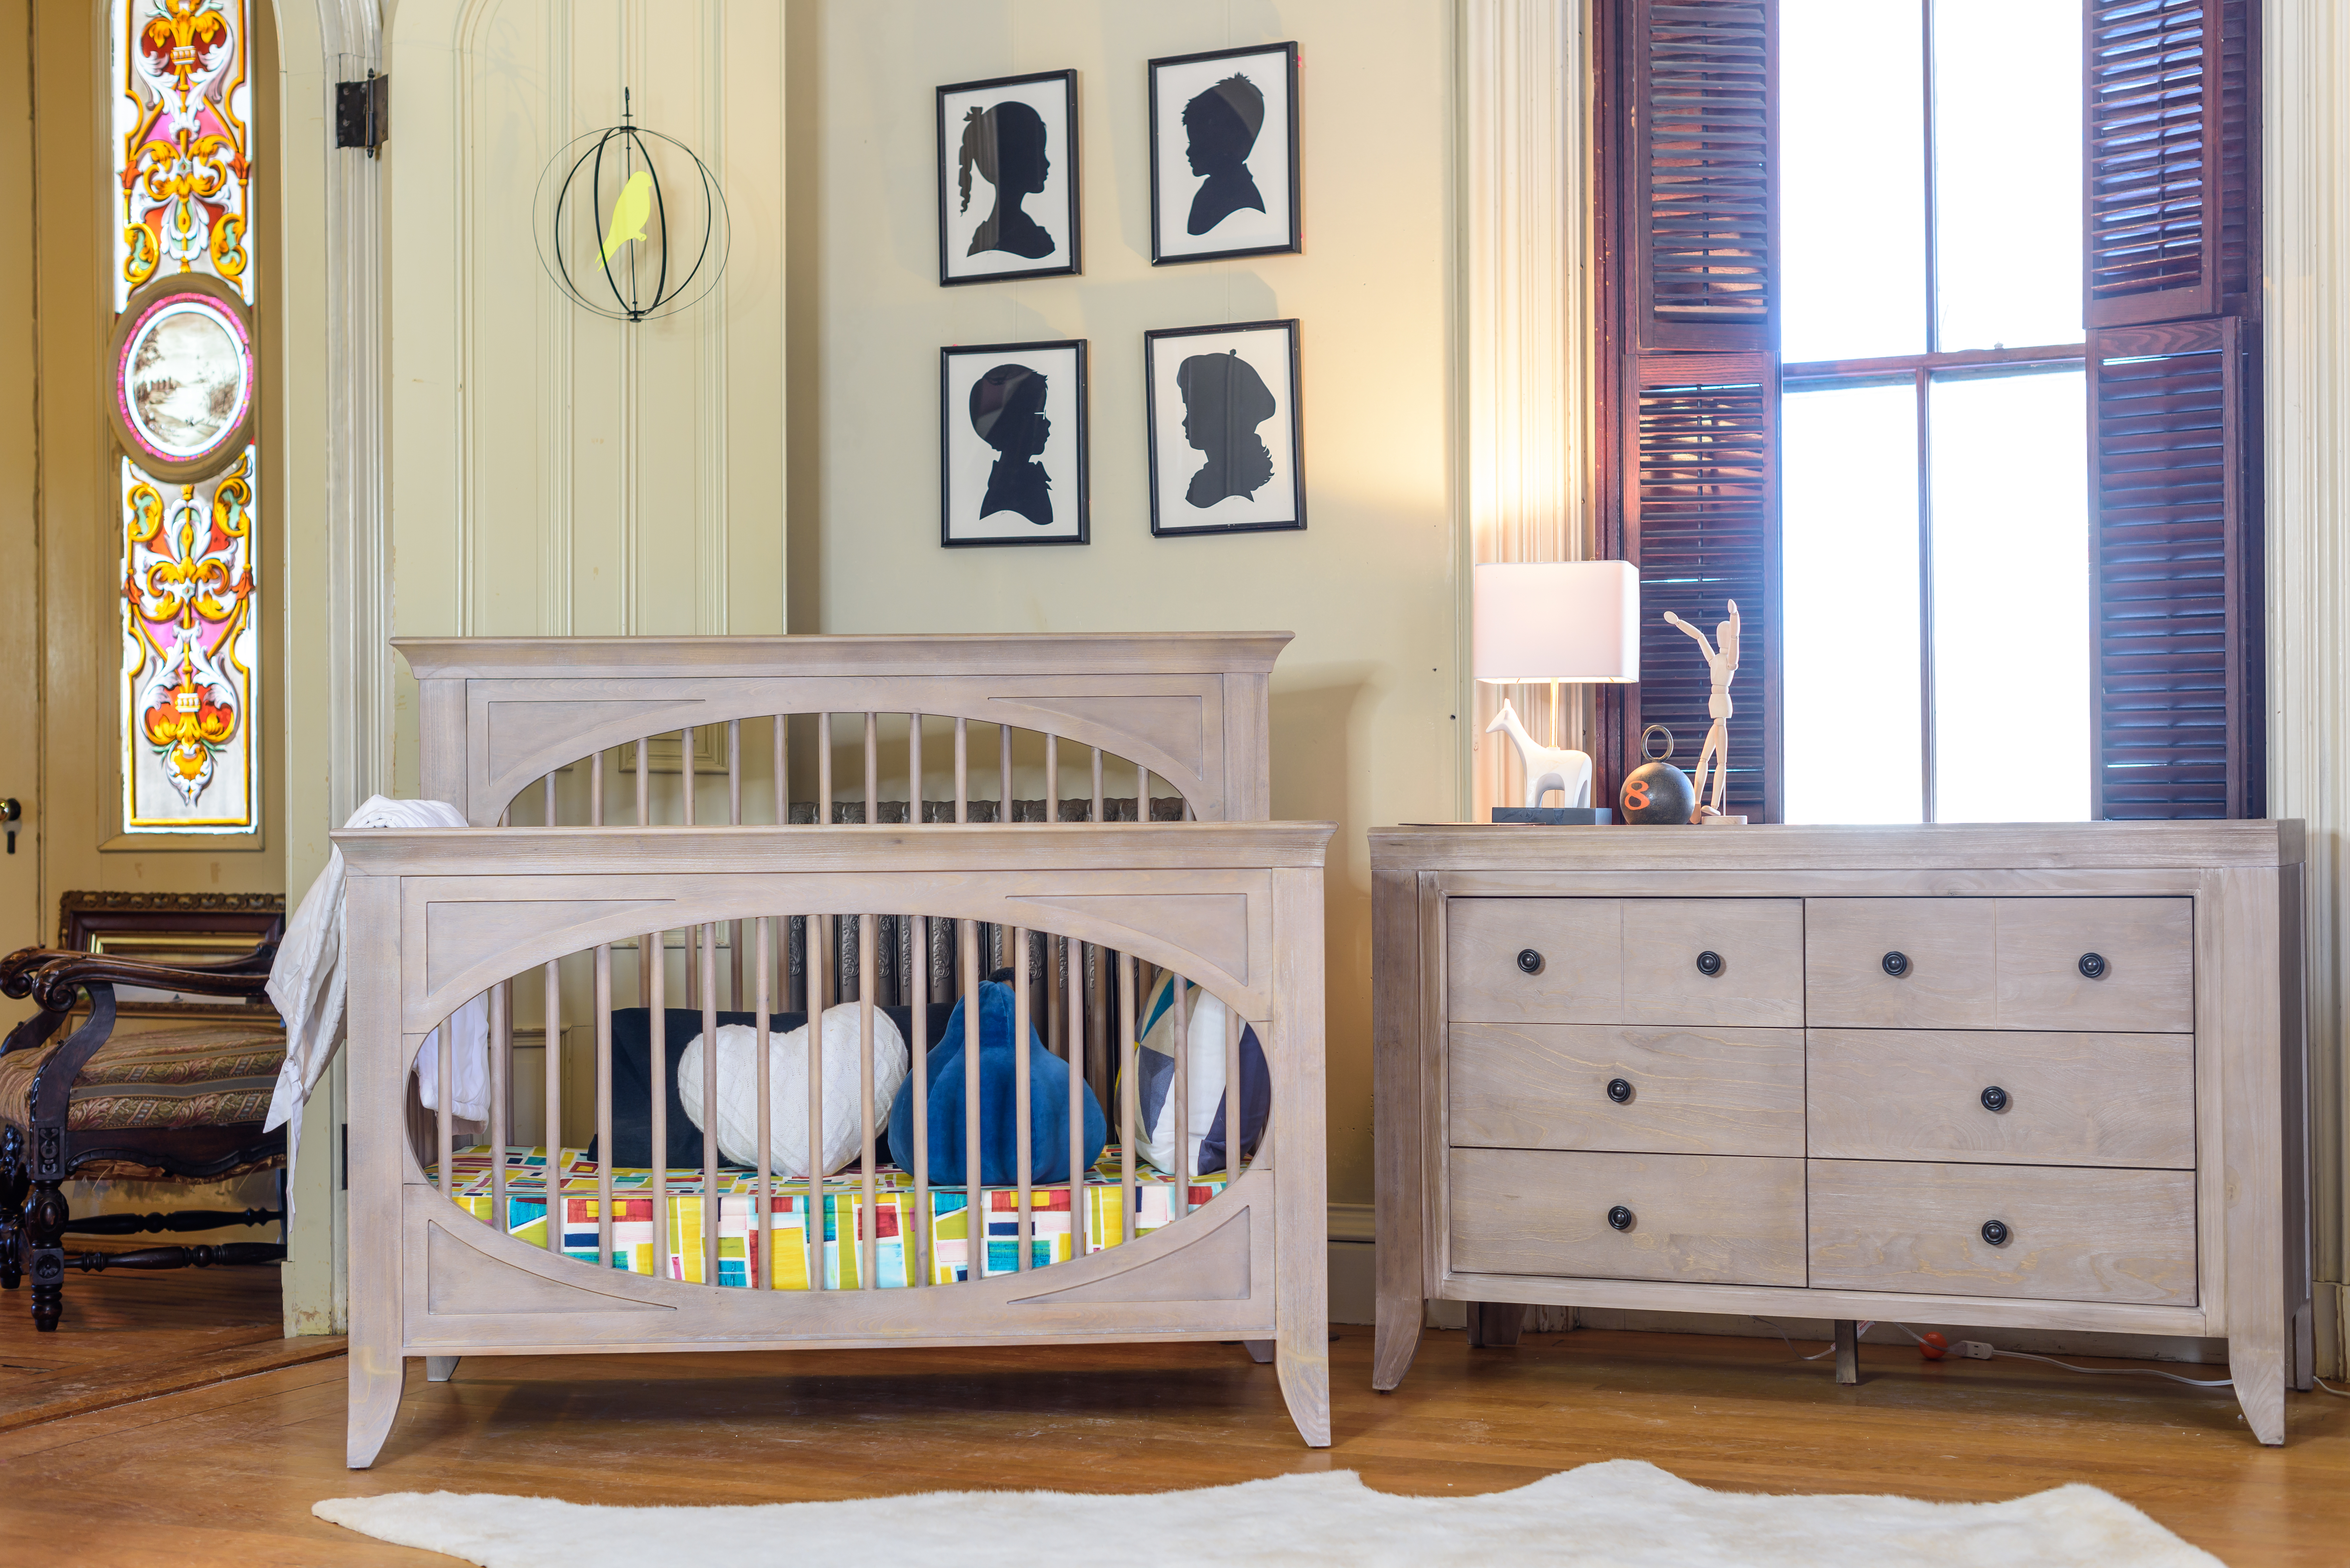 drawers crib convertible matty dresser cribs juvenile kids bark with pink featuring pulls soft vibe collection nest drawer brass in antique double product white